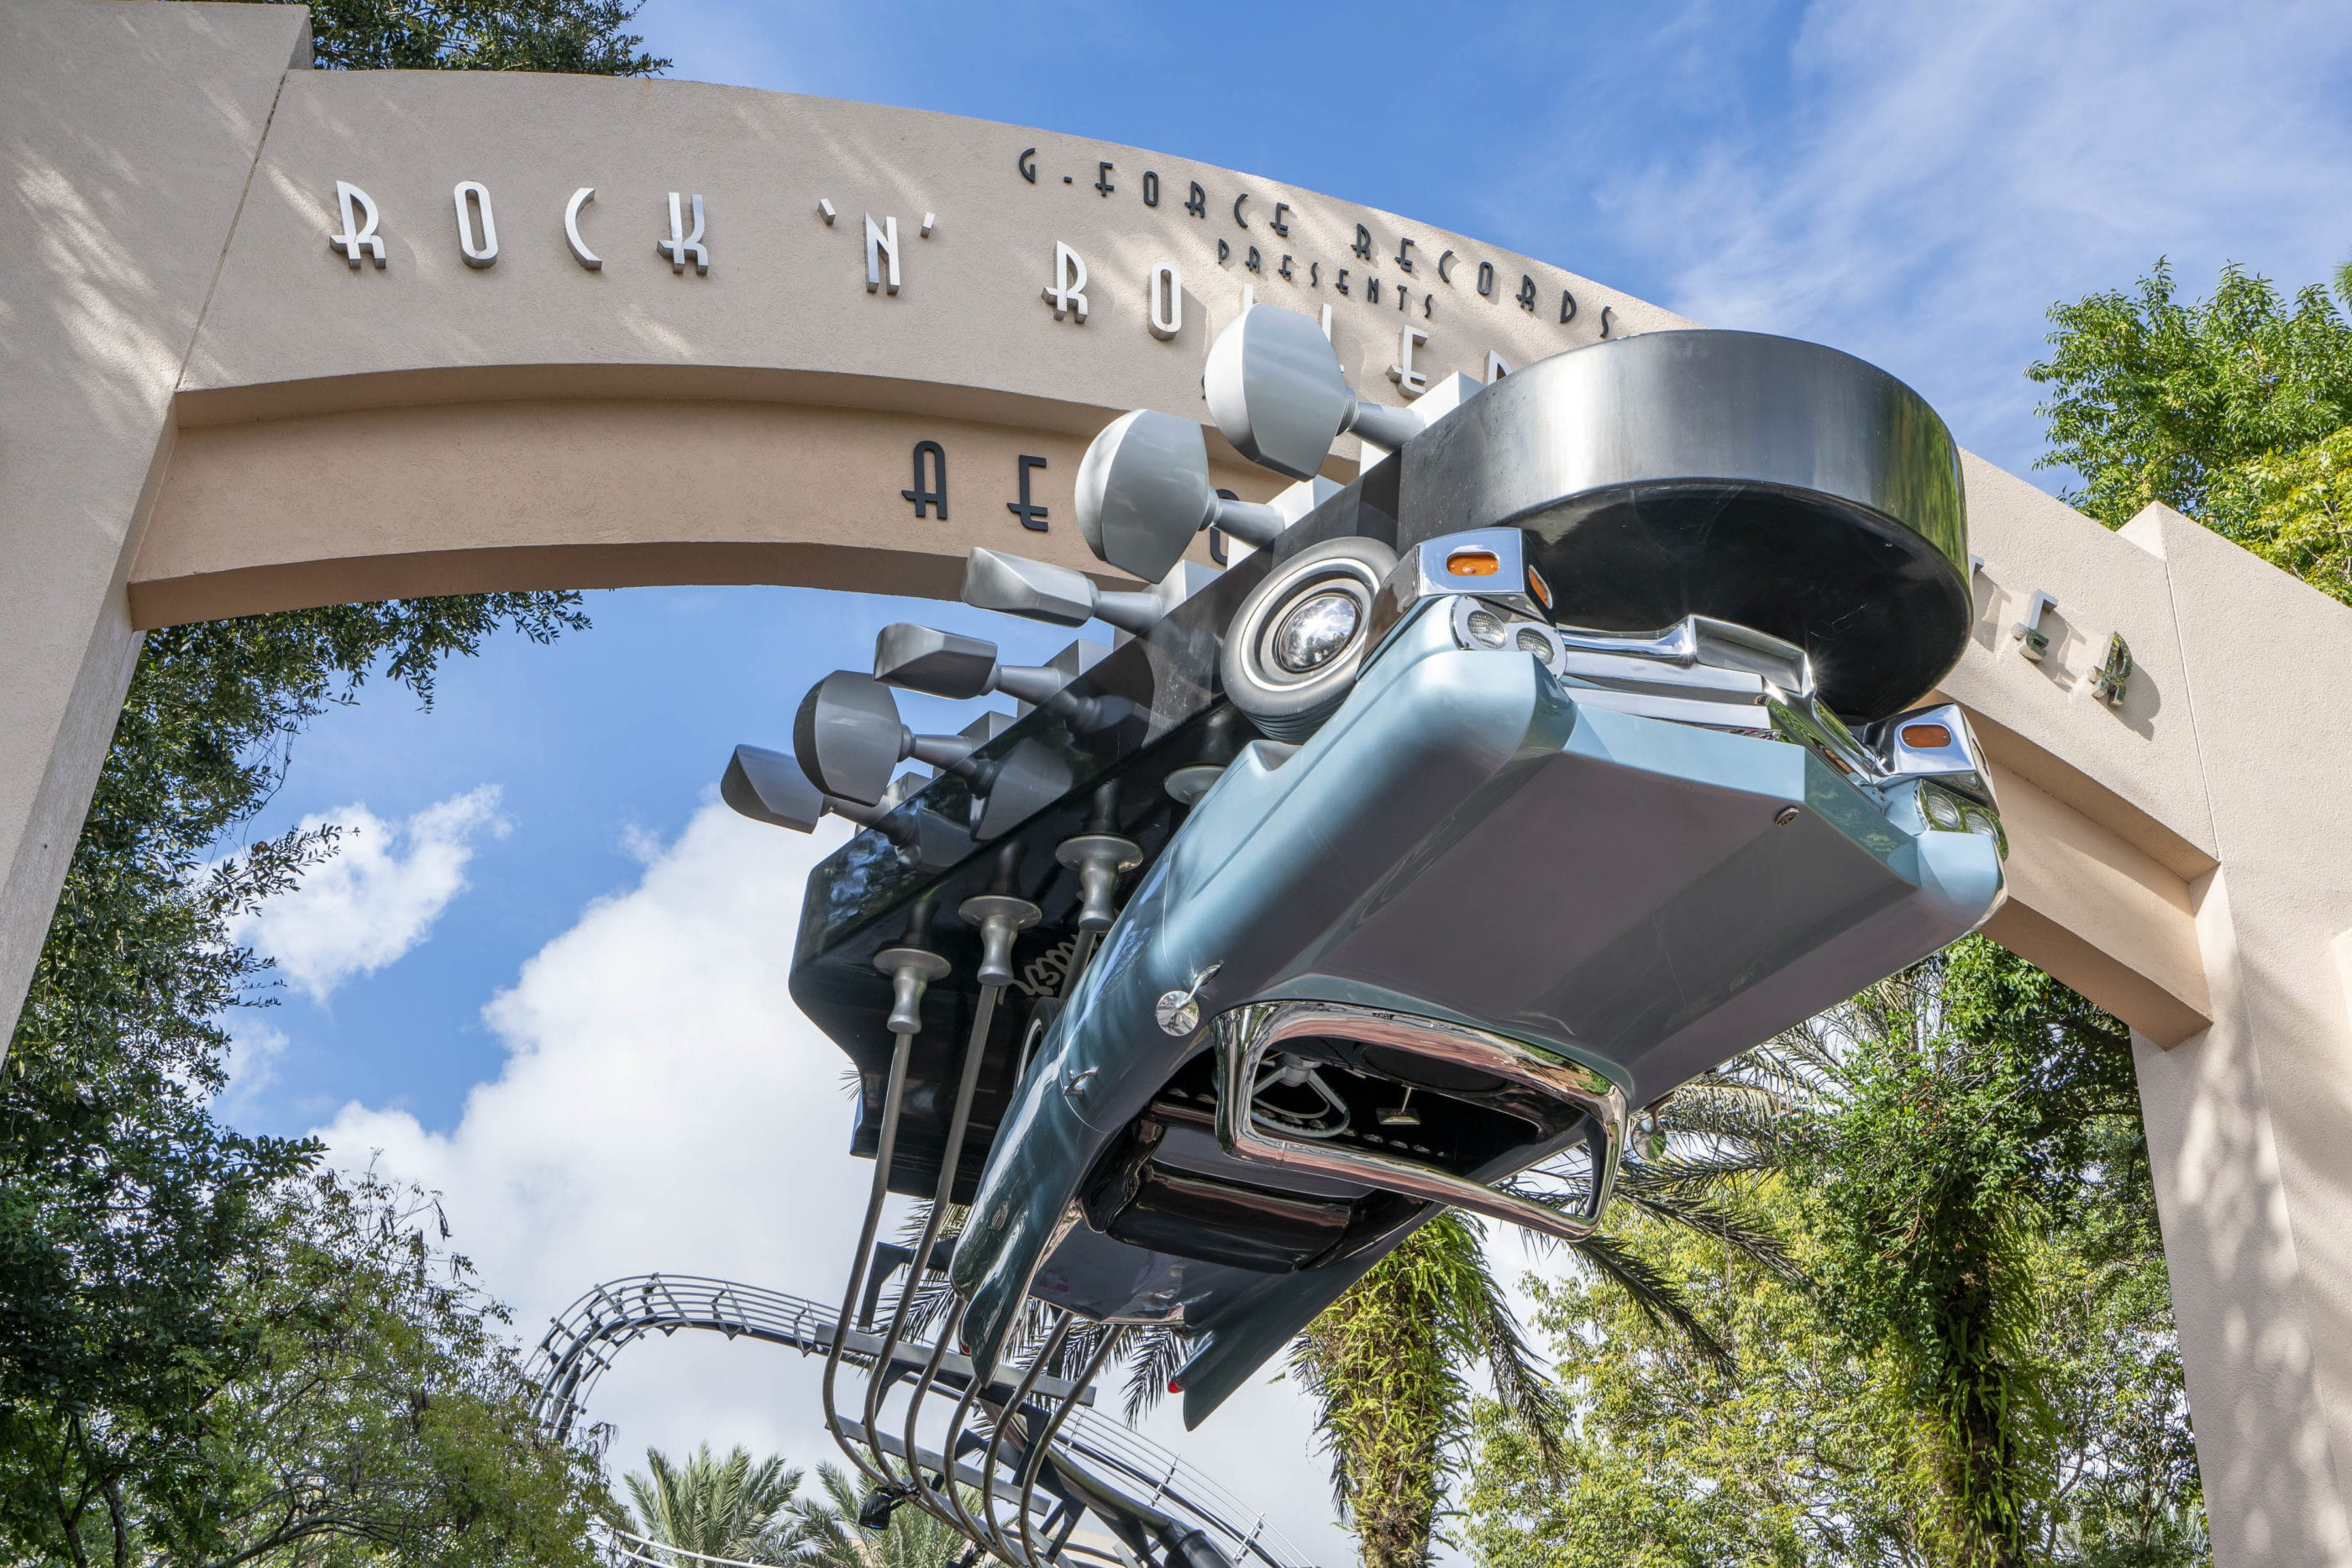 The upside-down car at the entrance to Rock 'n' Roller Coaster Starring Aerosmith at Disney's Hollywood Studios.